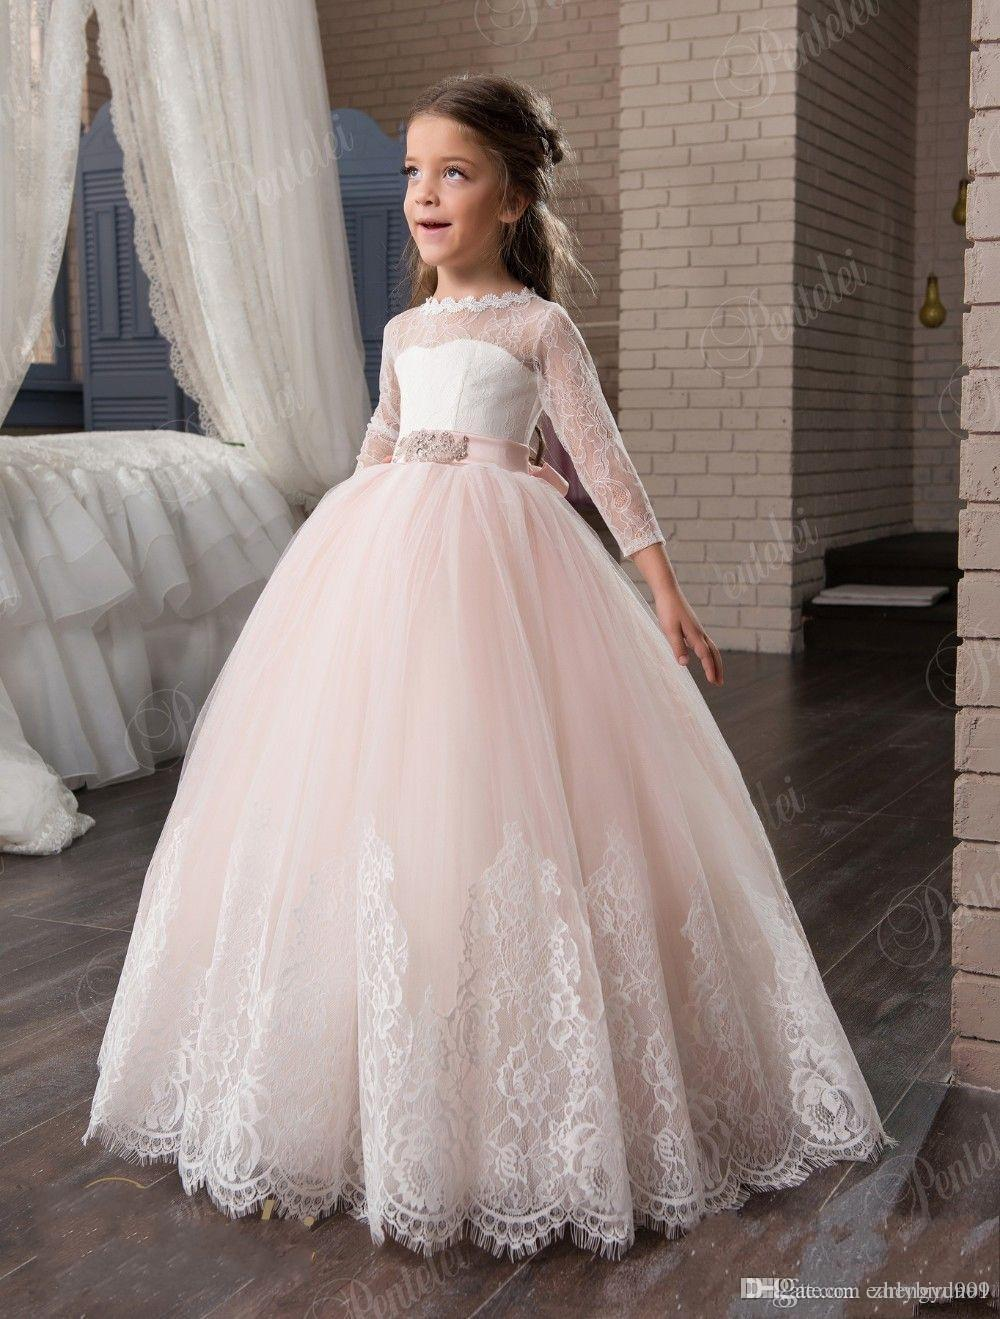 3a101d5f9509 Cute Pink Flower Girl Dresses 3/4 Long Sleeves Lace Appliques Princess Ball  Gown Pageant Girl Dresses Birthday Party Gown Flower Dress Girl Flower Girl  ...